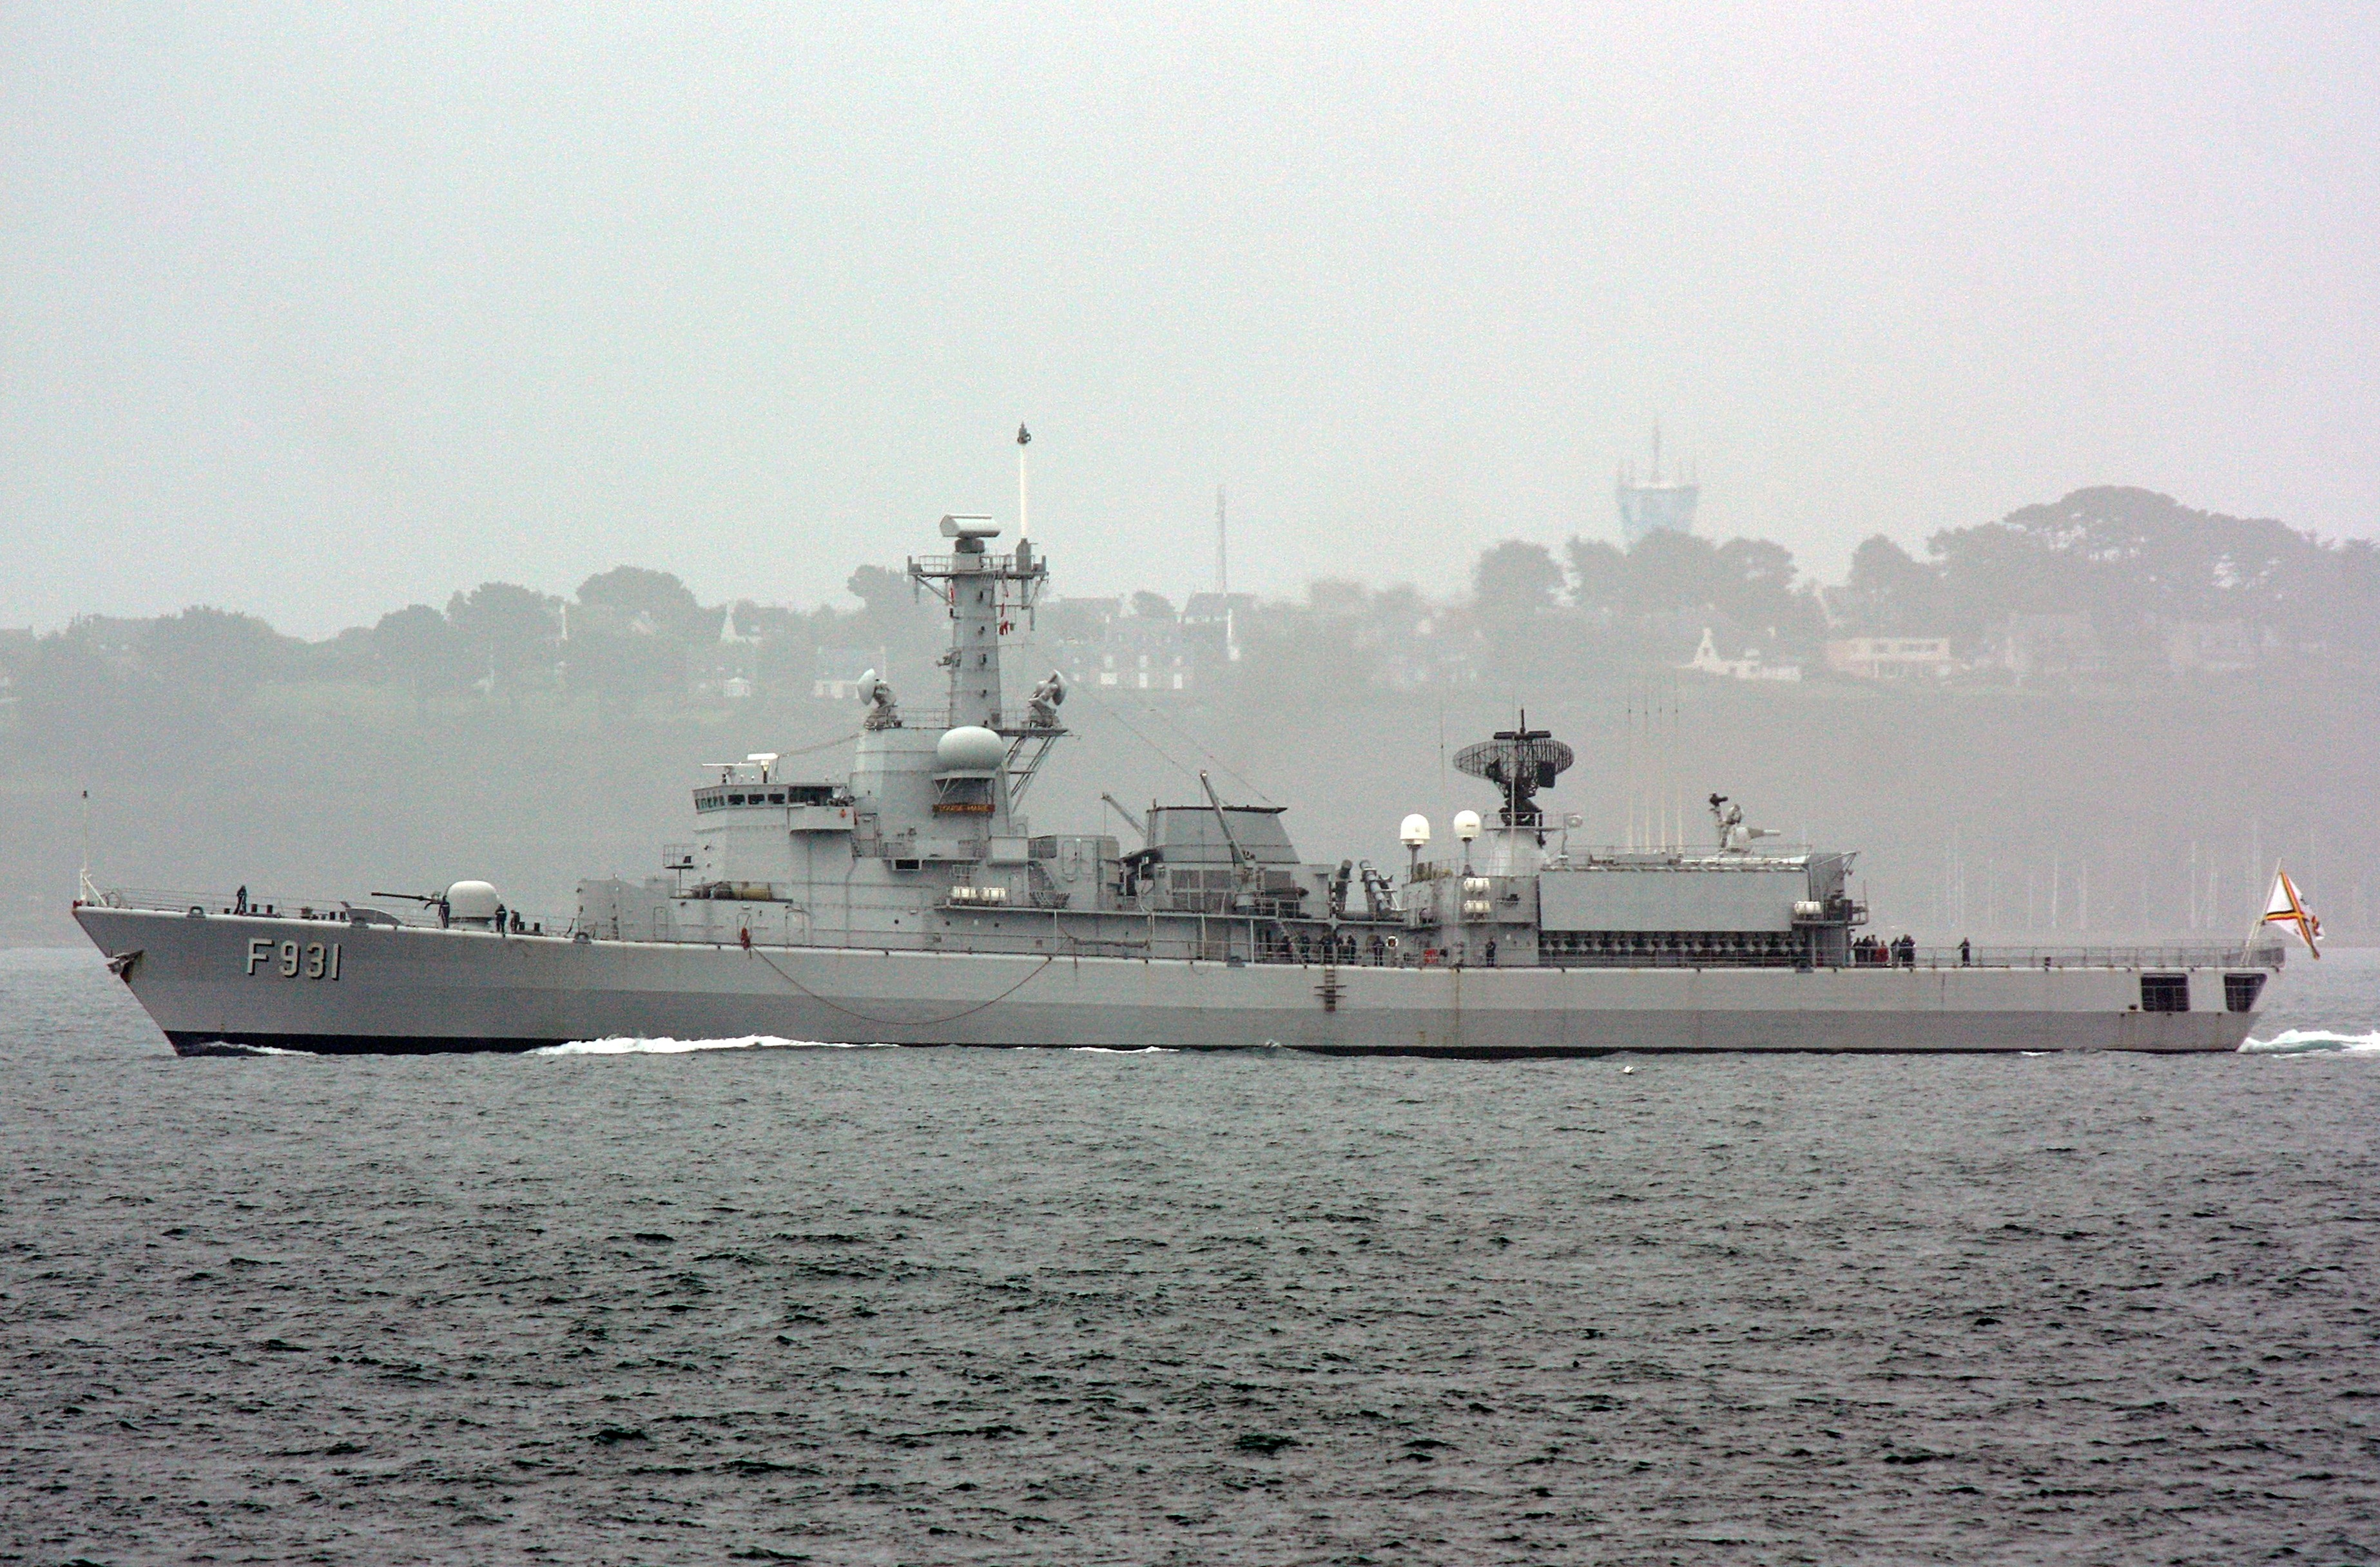 BNS Louise Marie - F931